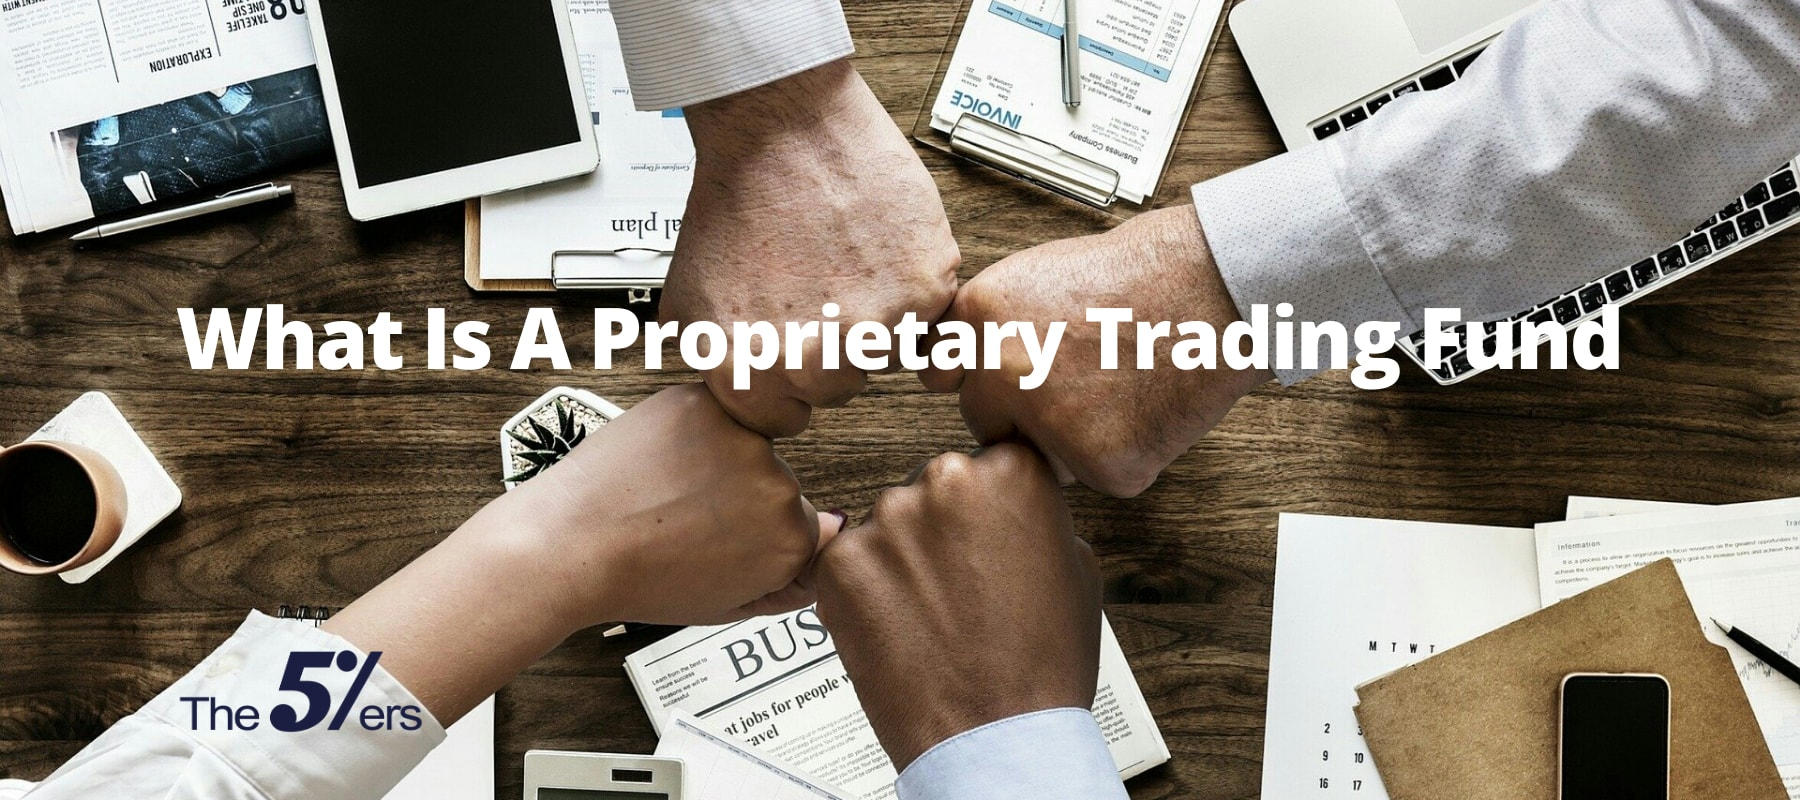 what is prop trading fund - proprietary trading fund & why it becomes popular among traders